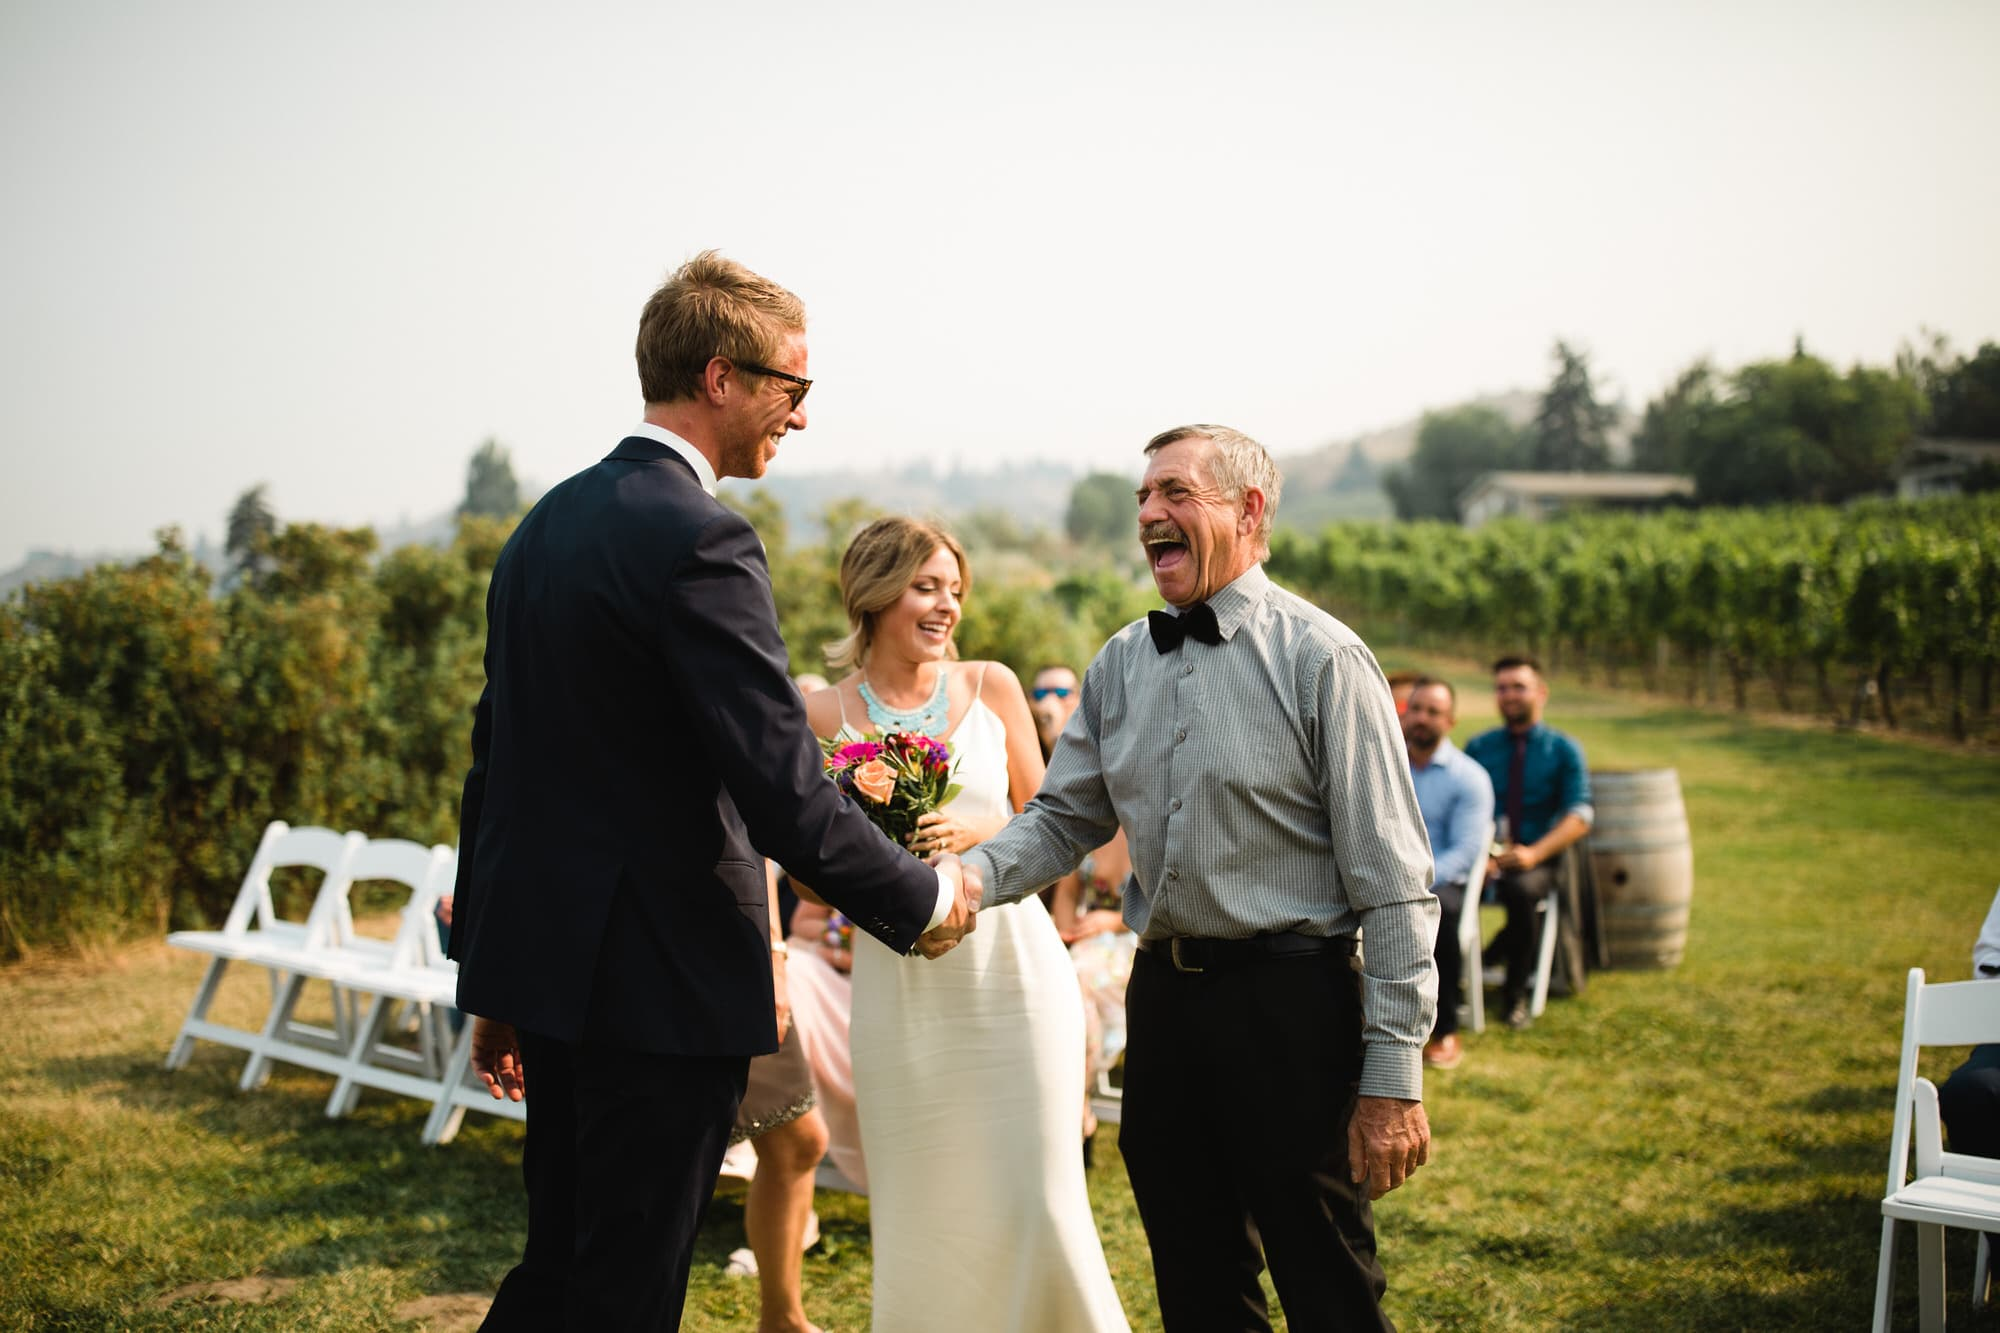 Groom and father of the bride shake hands at the alter at Evolve Cellars Vineyard on Lake Okanagan, Summerland, BC. Destination wedding photographer Brent Calis.